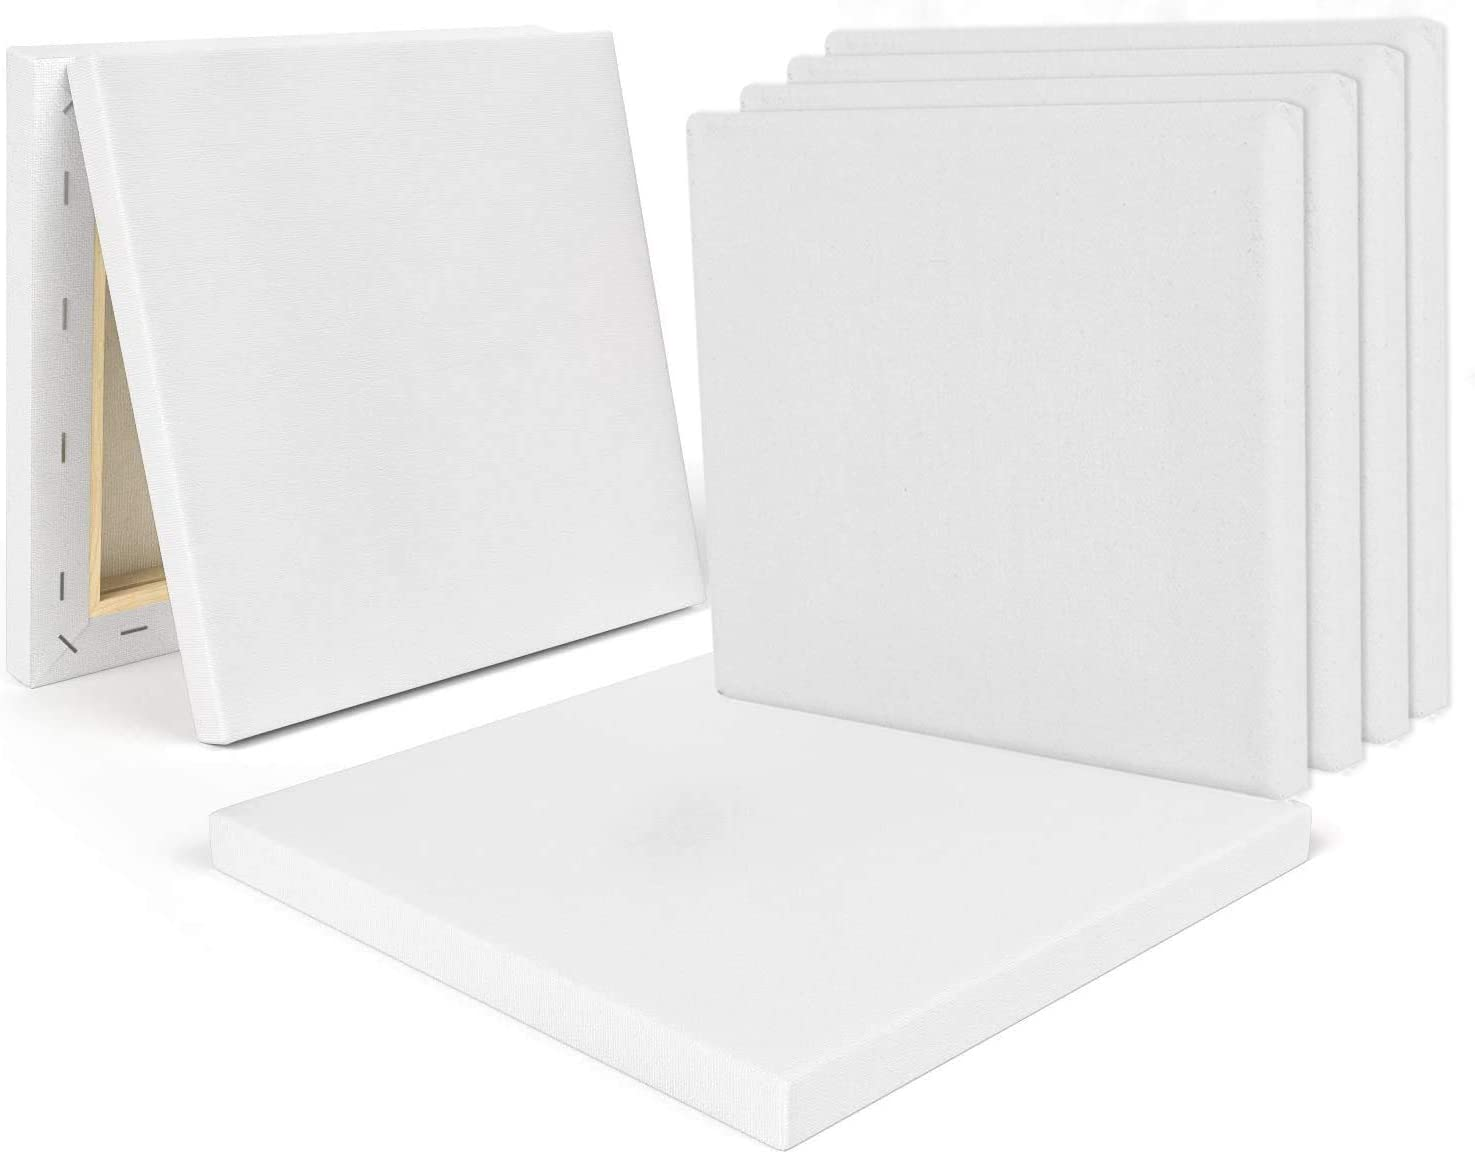 Hobby Painters /& Beginner 12 Pack 8 x 8 Inch Stretched Canvas Panels Oil Paint /& Watercolor pre-Stretched for Artist CBTONE 100/% Cotton Canvas Boards for Painting Acrylic